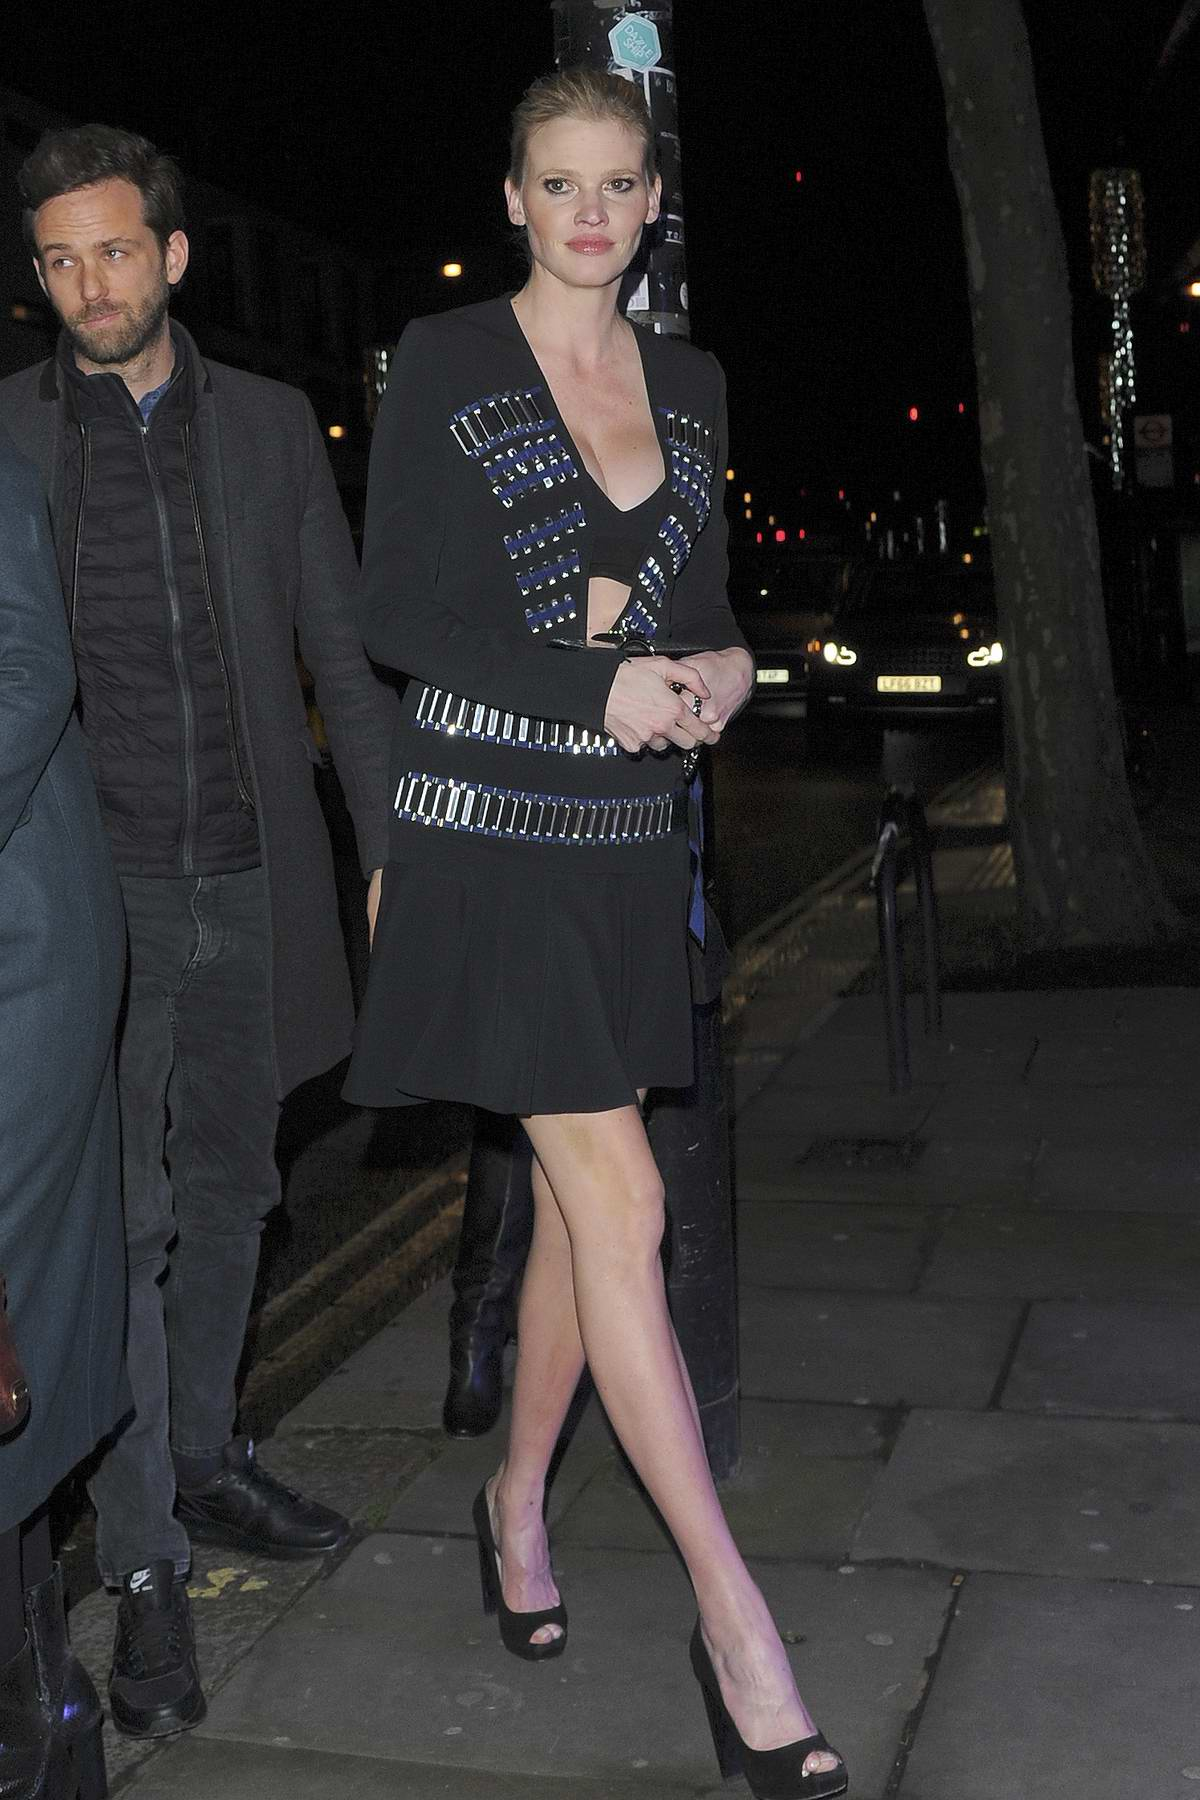 Lara Stone arrives for Fabulous Fund Fair during London Fashion Week at The Roundhouse in London